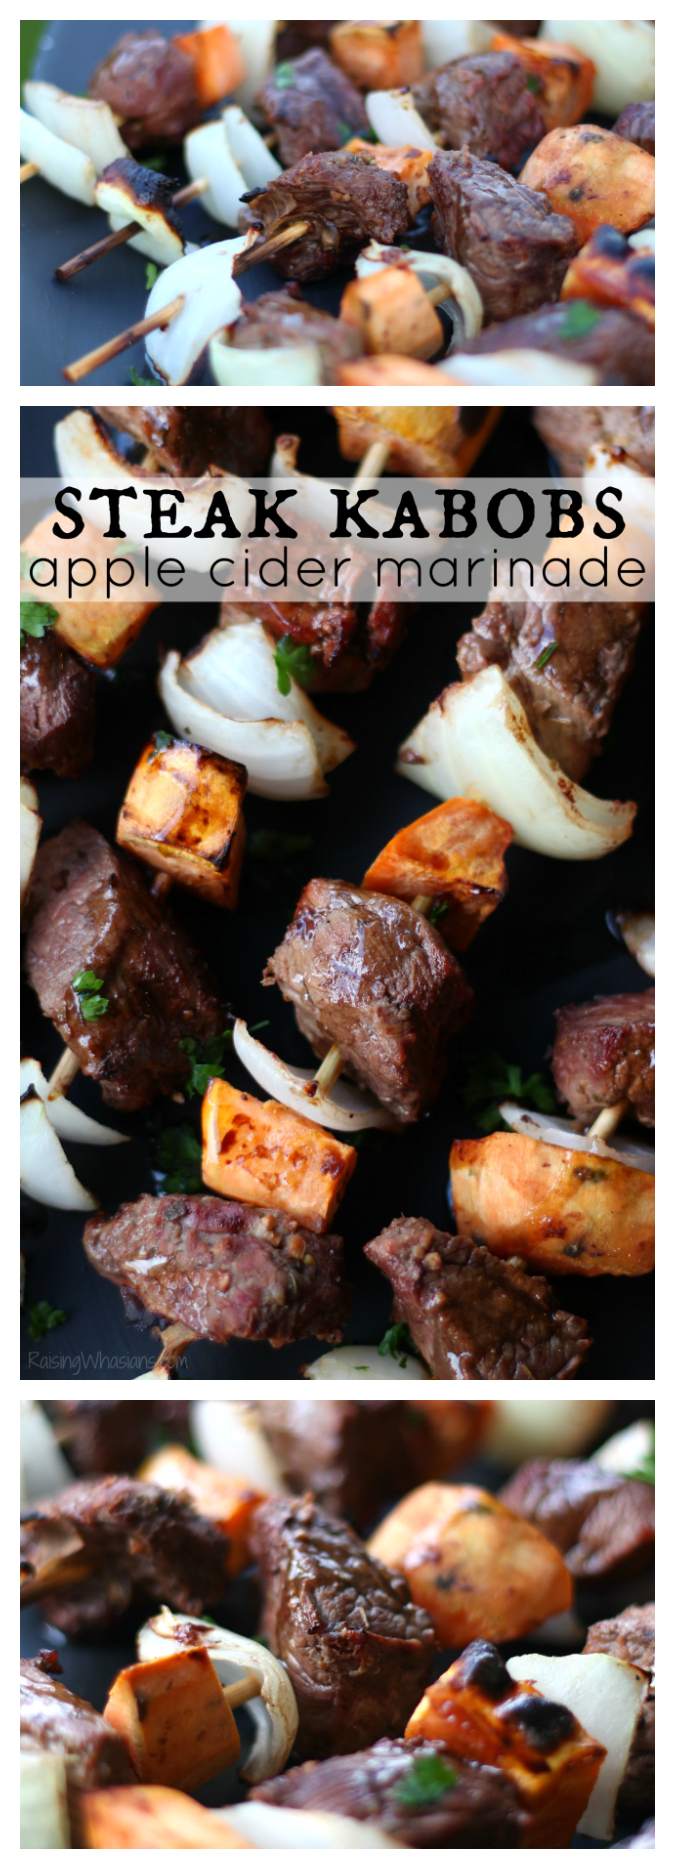 Fall steak kabobs pinterest Fall Steak Kabobs with Apple Cider Marinade   Delicious fall grilling recipe featuring steak, sweet potatoes & easy apple cider marinade #ProteinChallenge #Recipe #grilling